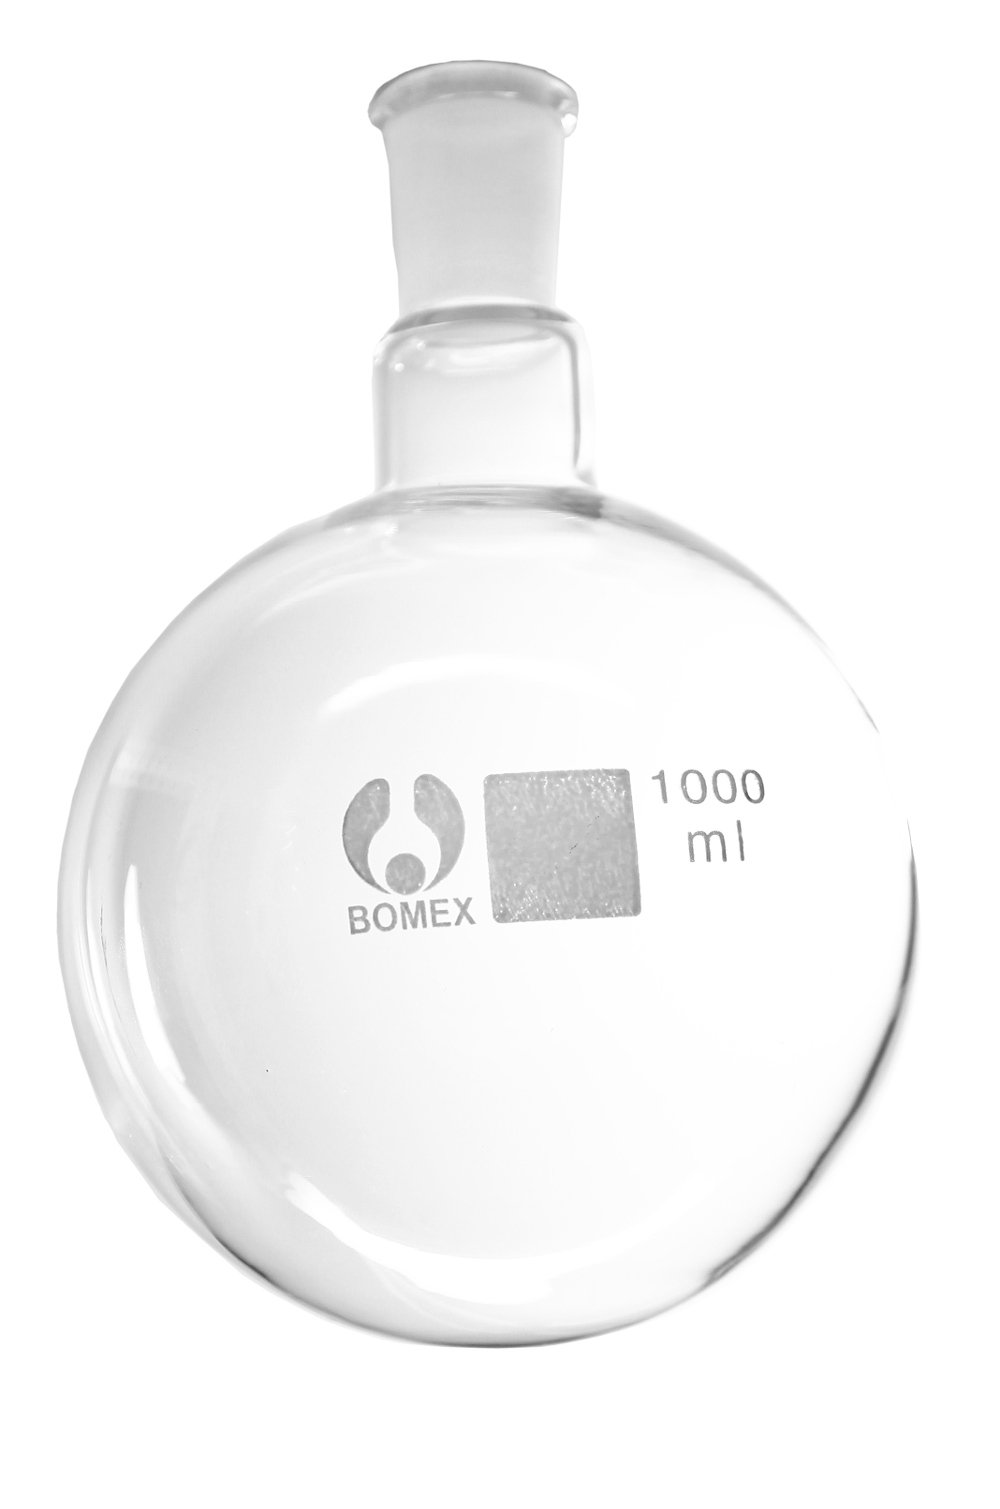 SEOH Round Bottom Boiling Flask 2000ml 24//40 joint